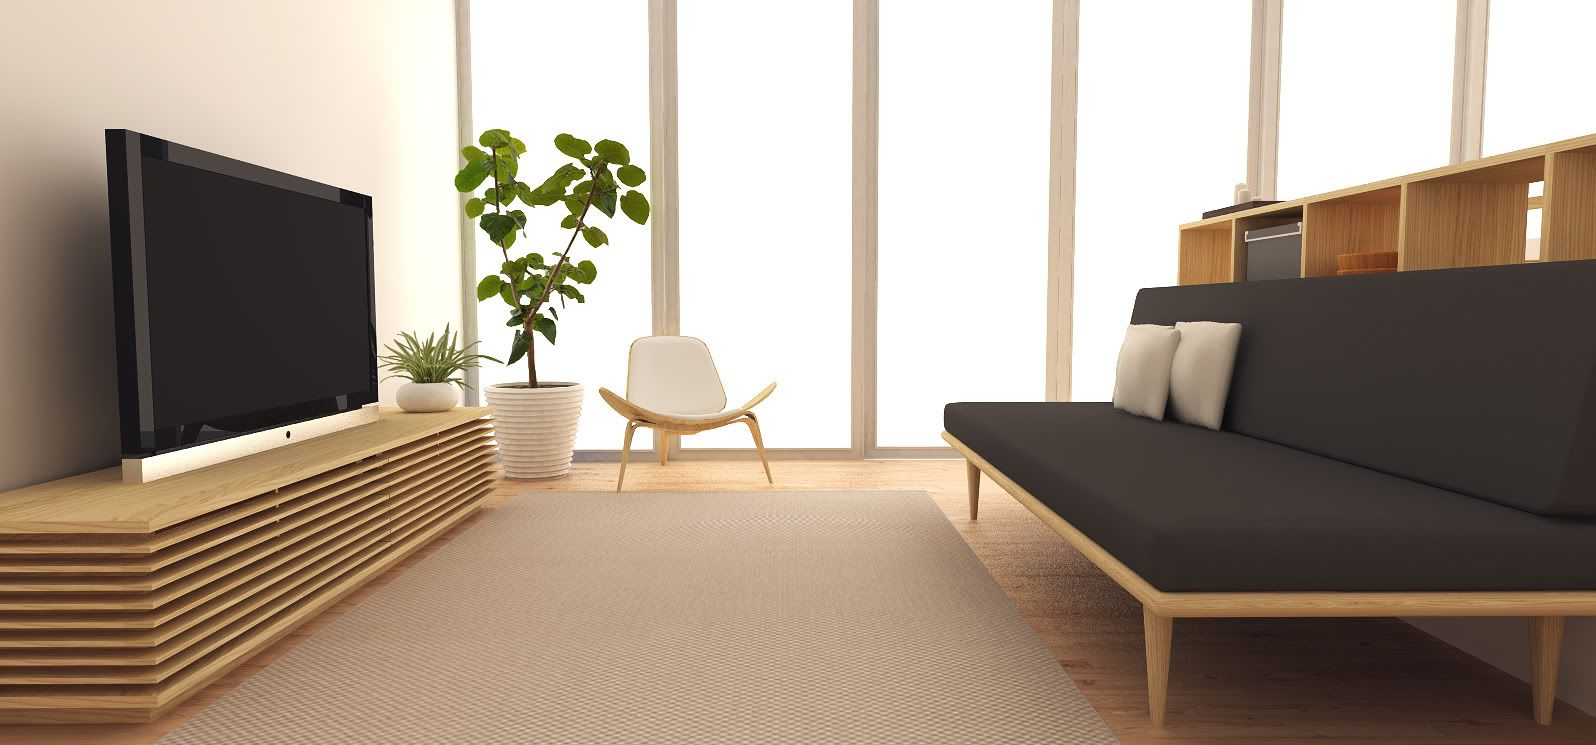 Minimalist tv console simple chair durable carpet and for Minimalist japanese lifestyle